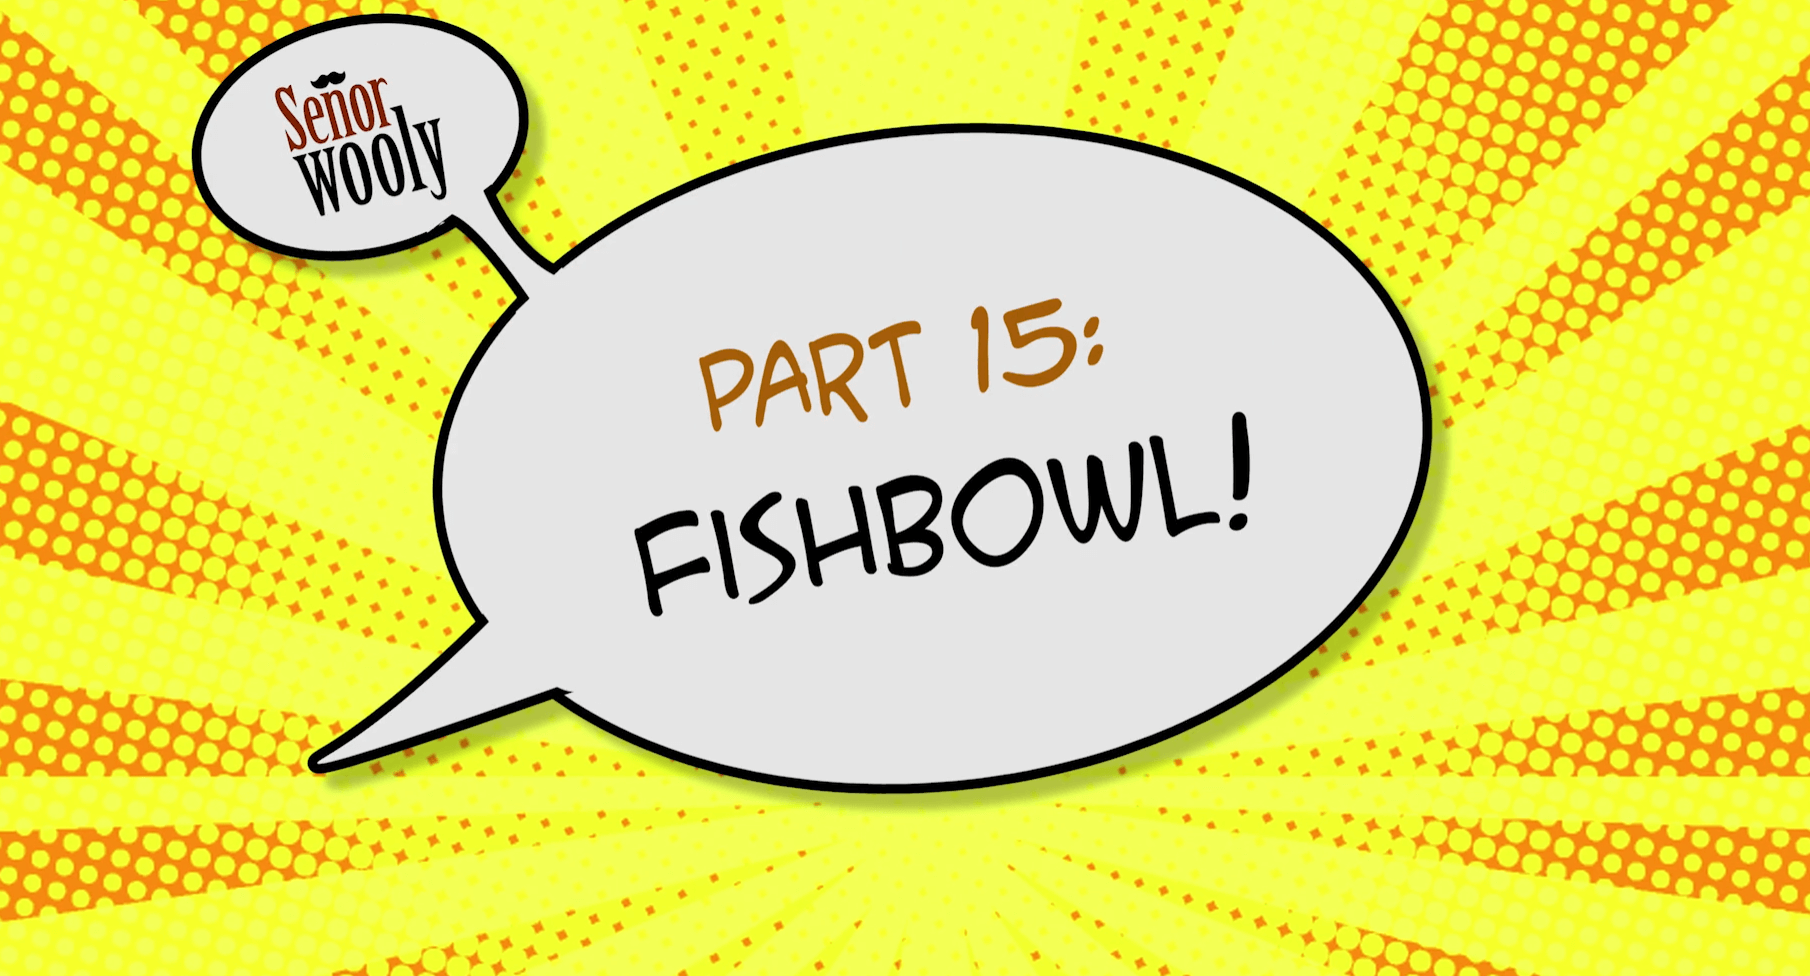 Part 15 - Fishbowl!